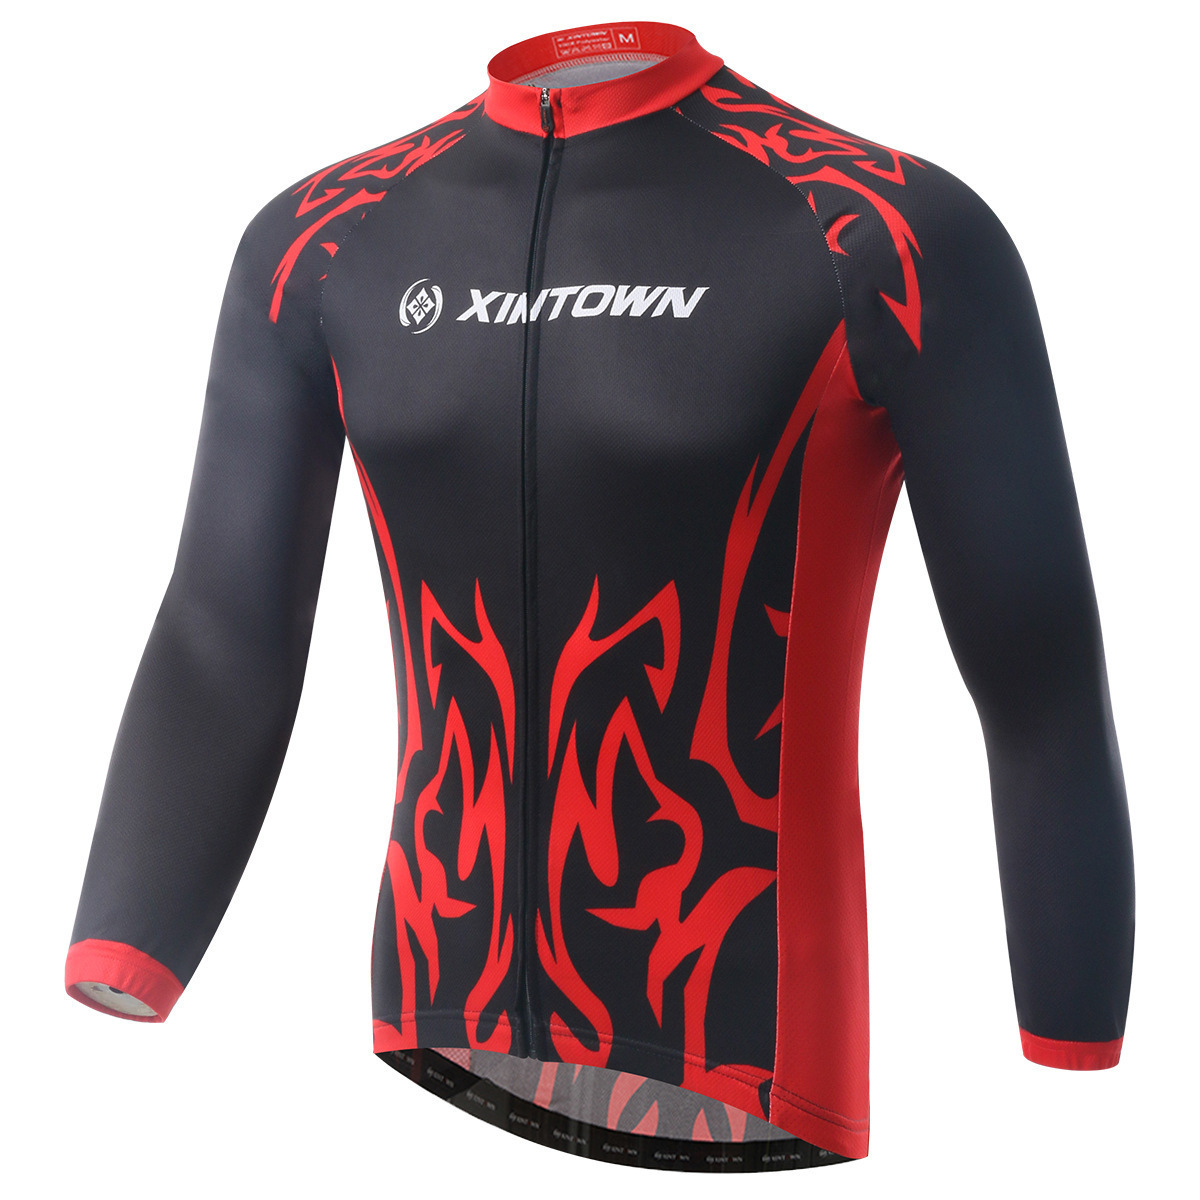 XINTOWN New Riding Bike Mens Cycling Long Jersey Winter Thermal Windproof Hooded Jacket Man Keep Warm Outdoor Sportswear